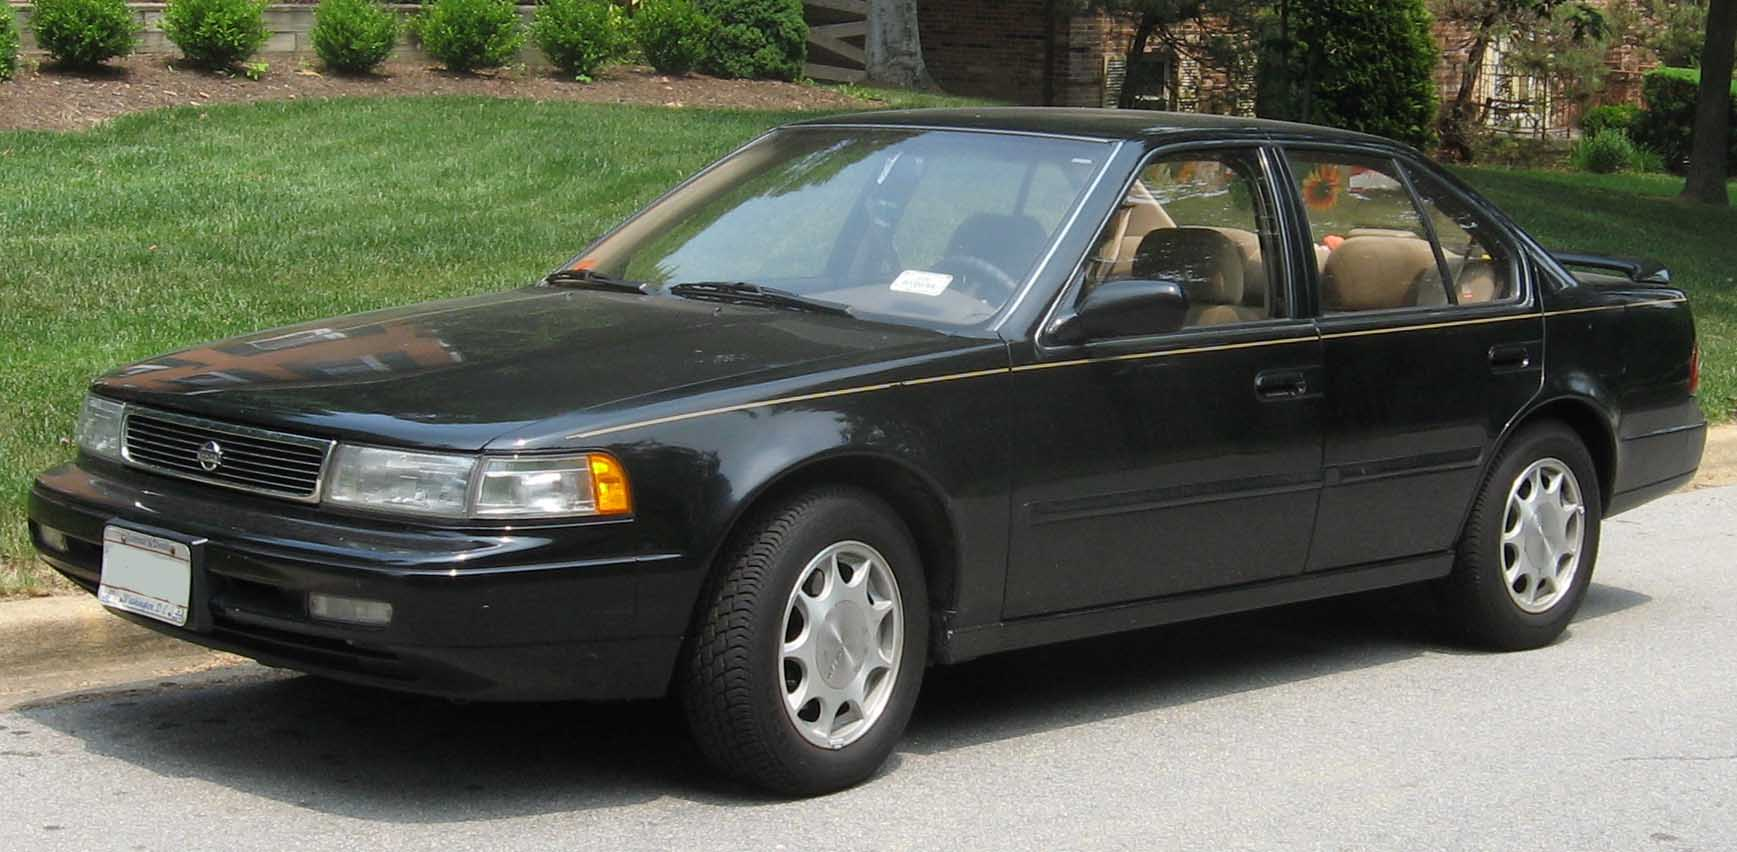 hight resolution of  1992 nissan maxima gxe auto photo 3